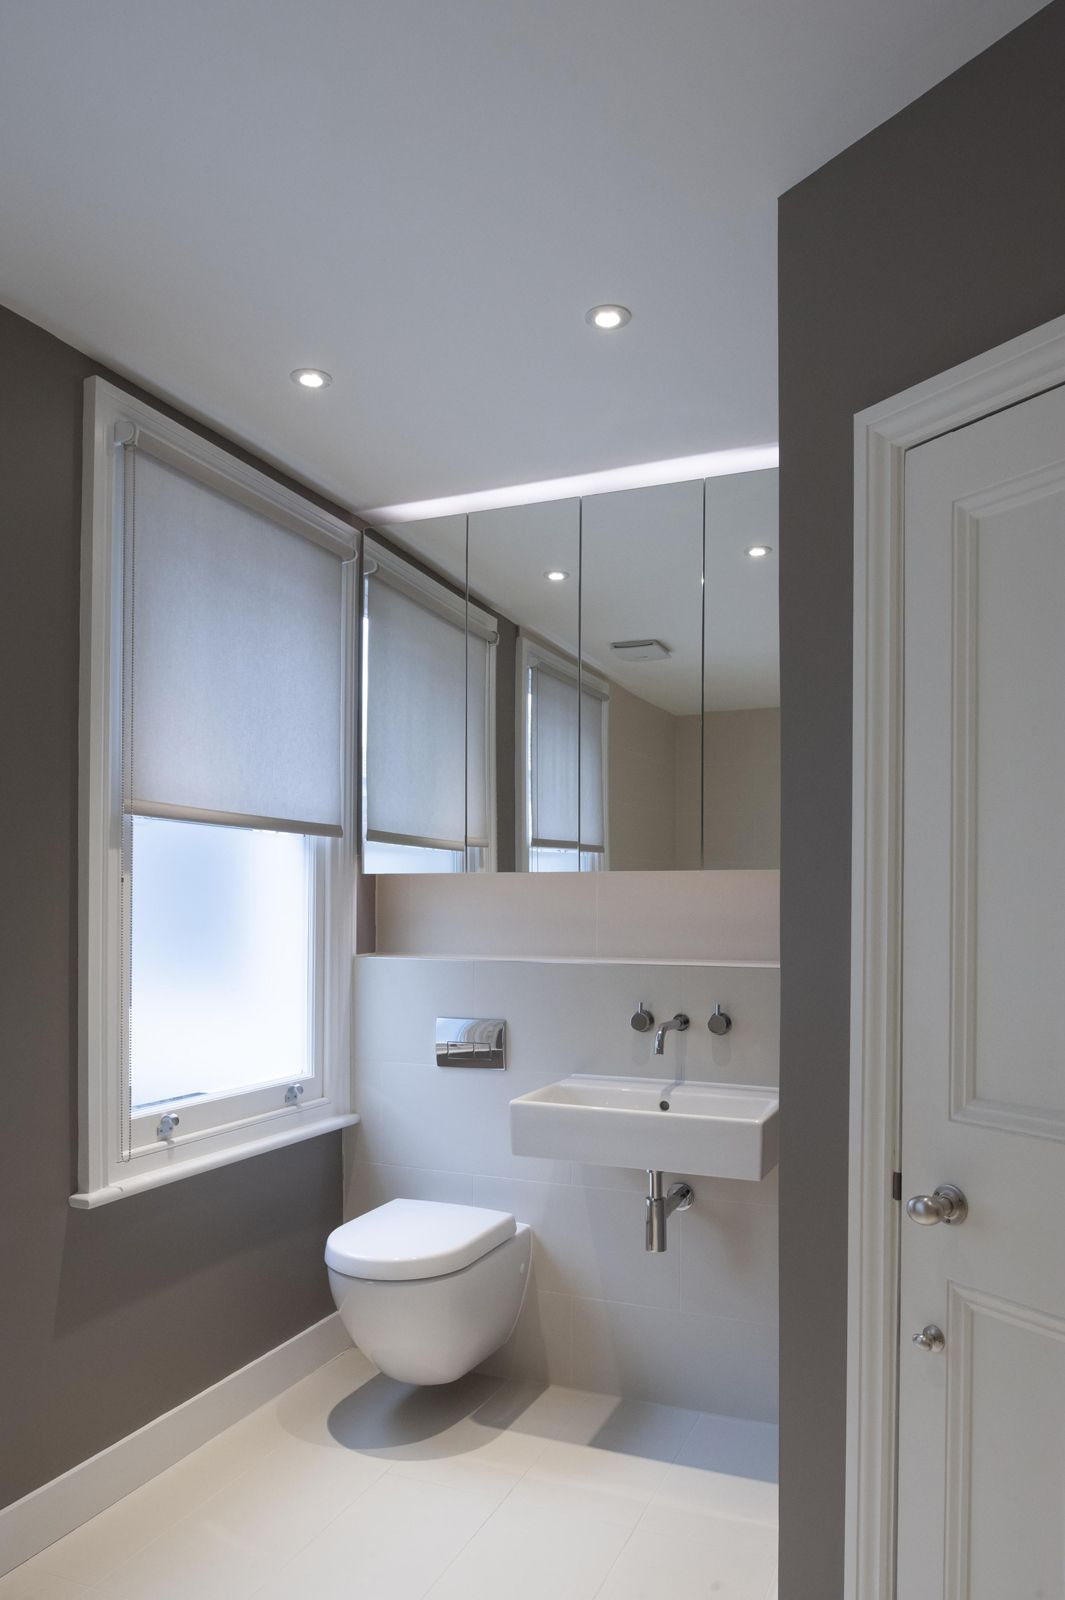 Recessed Mirror Cabinets Shelf Above Concealed Cistern Similar Layout Bathroom Mirror Cabinet Minimalist Bathroom Master Bathroom Design